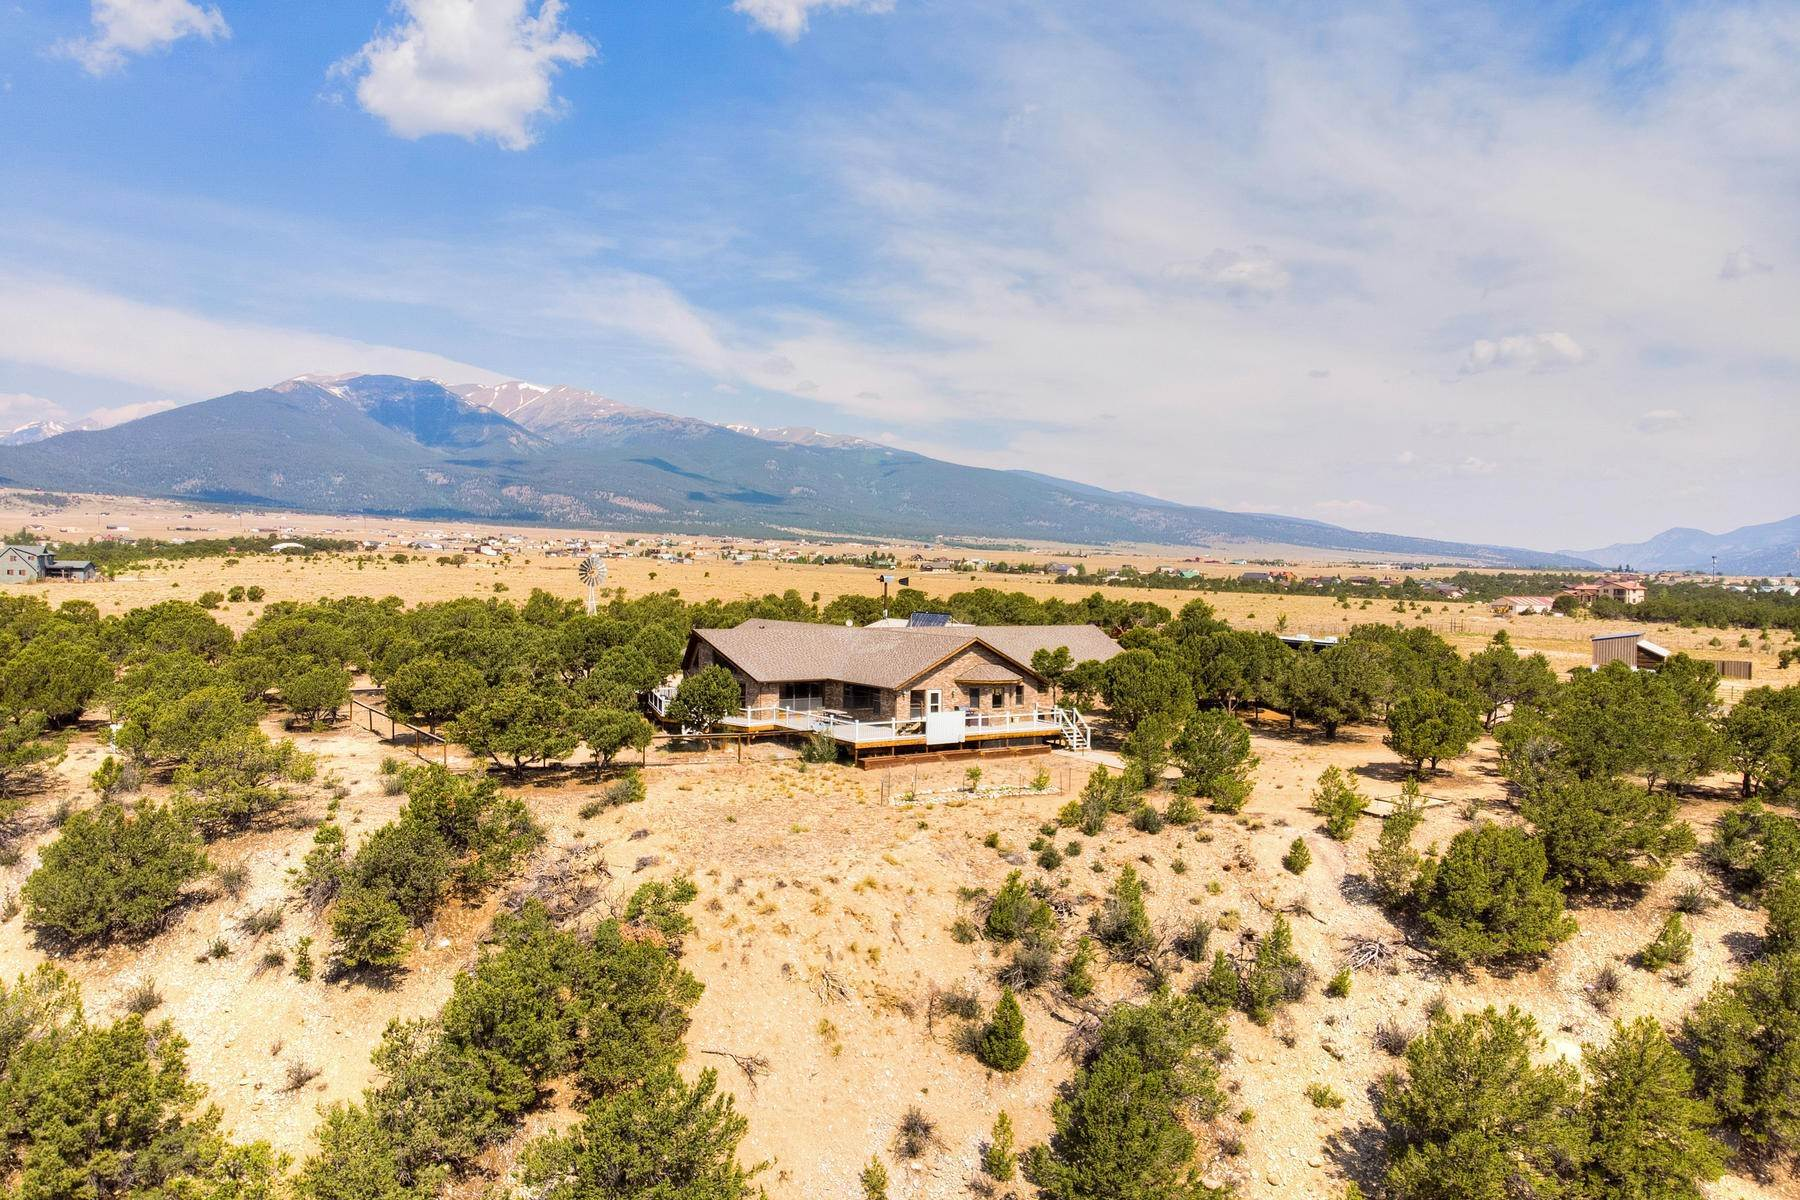 Single Family Homes for Sale at 36+ Acre Horse Property 13250 County Road 353 Buena Vista, Colorado 81211 United States